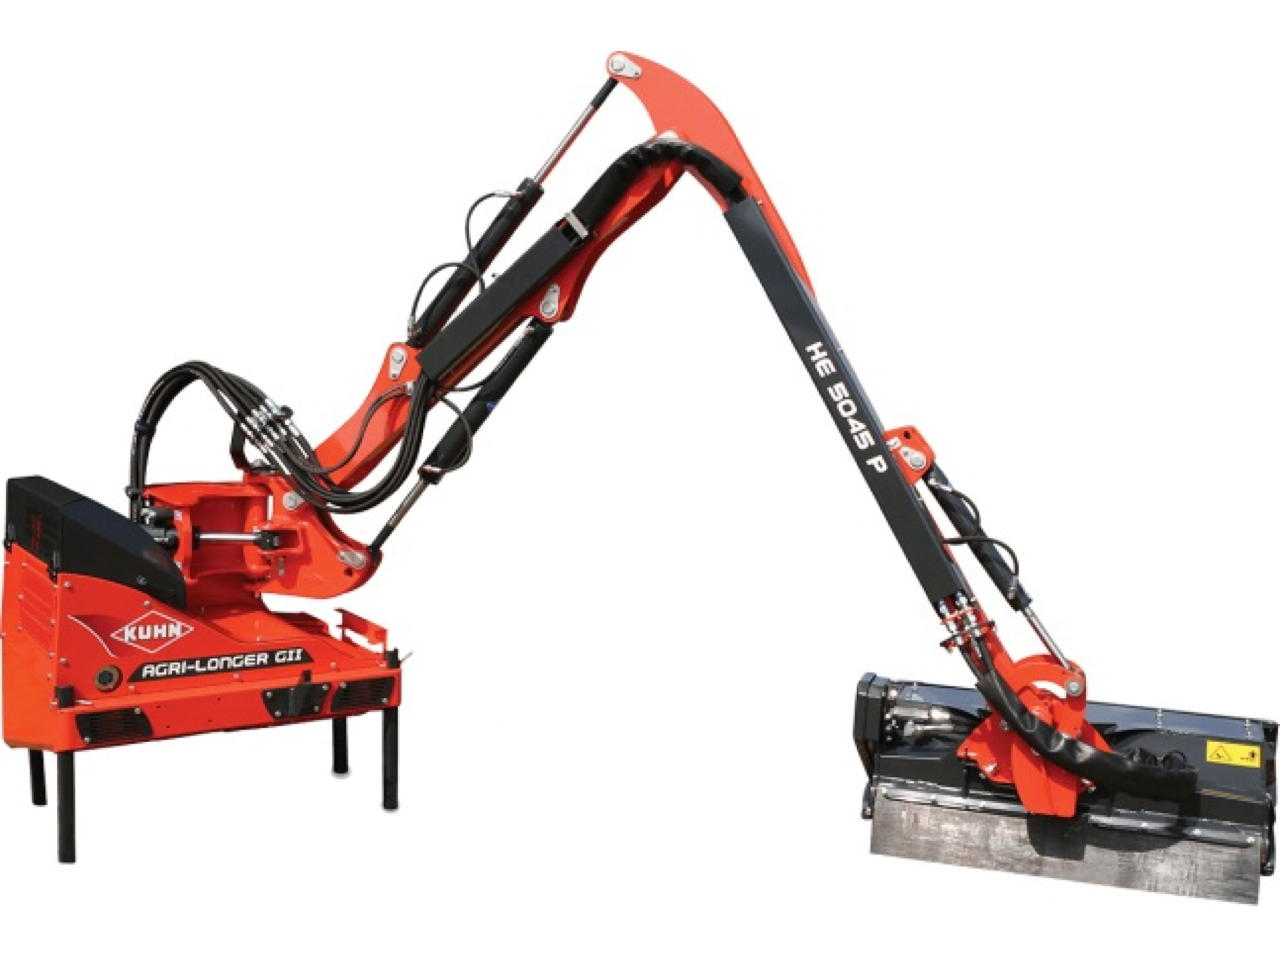 Kuhn Agri-Longer GII con perno di sicurezza Agri Longer GII 5045 P TD